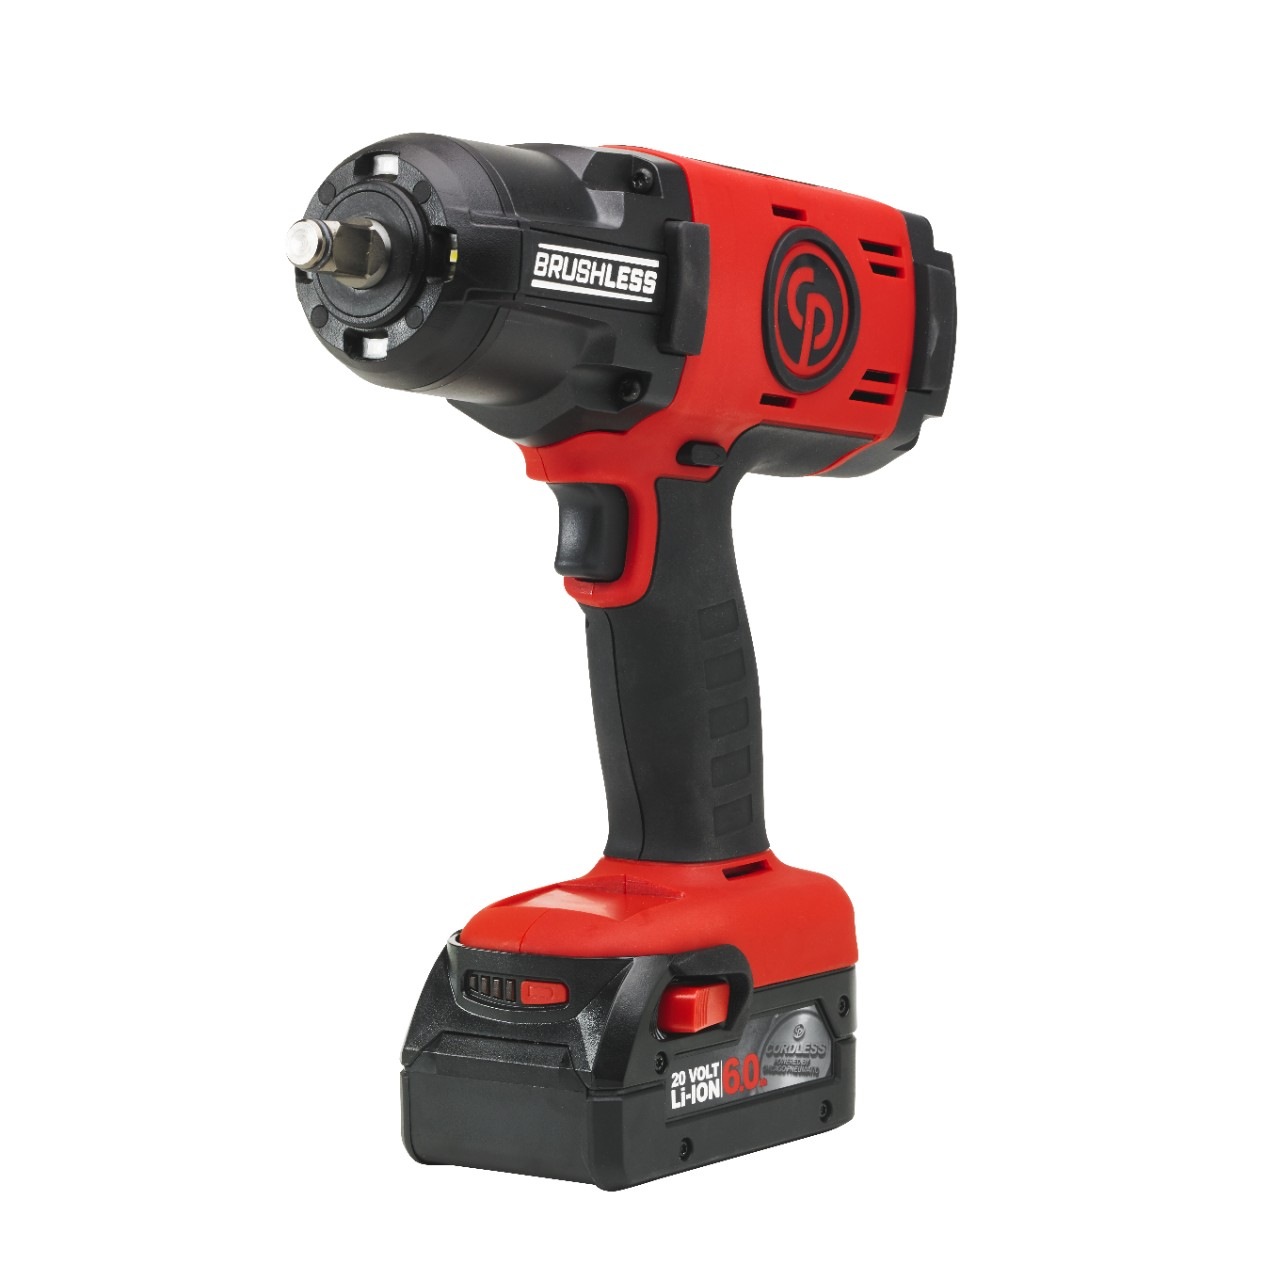 Chicago Pneumatic's New Cordless Impact Wrench Has 2 Shut-Off Positions